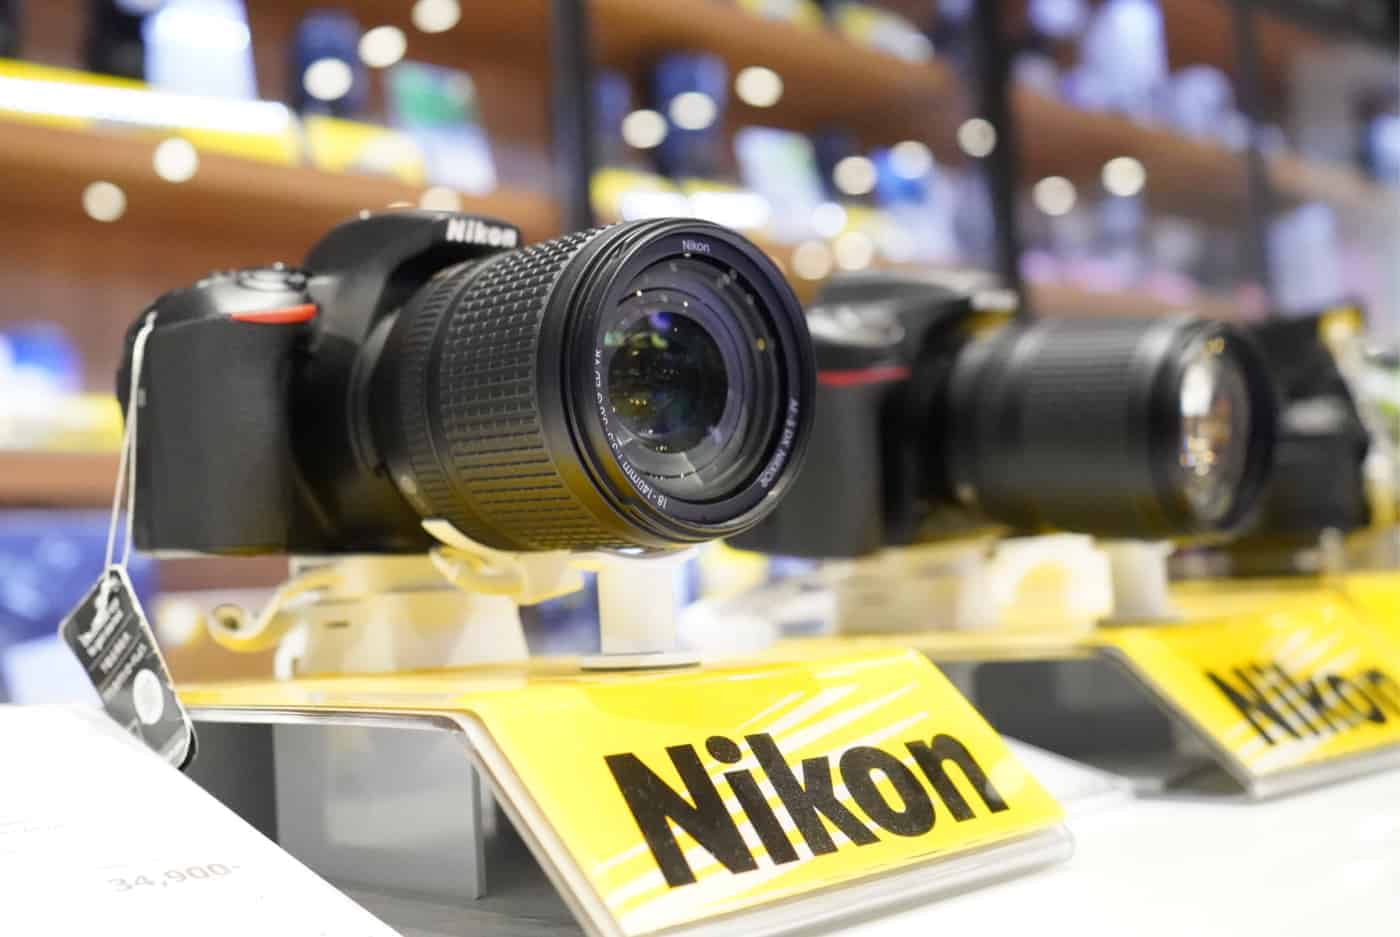 Best Nikon DSLR Lenses for Beginners (the Complete Buying Guide)